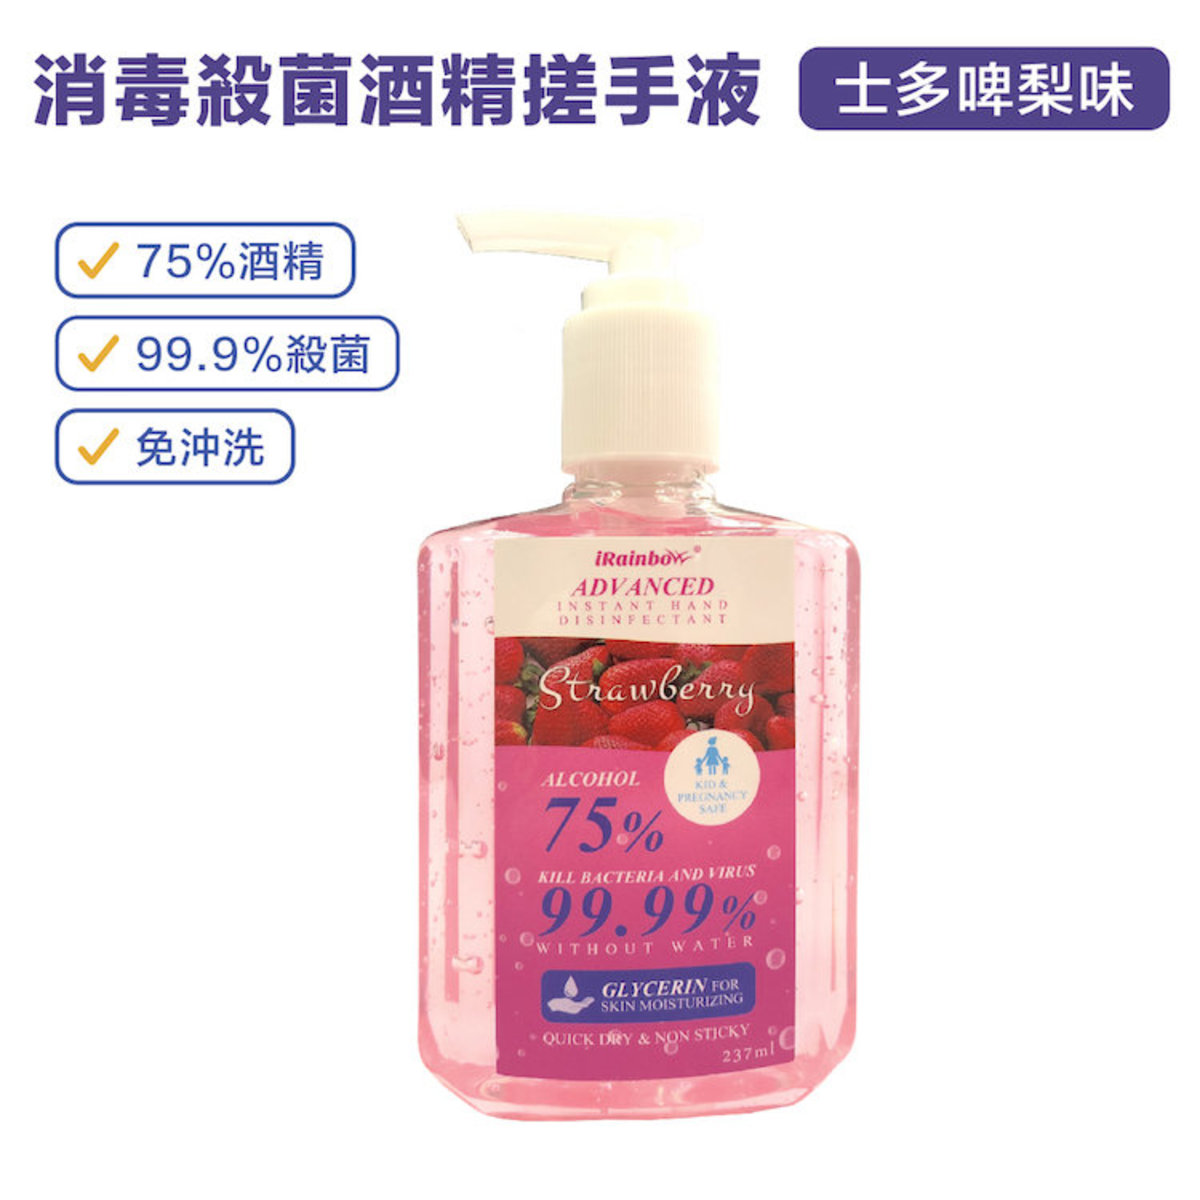 75%Alcohol instant Hand disinfectant(237ml)-Strawberry